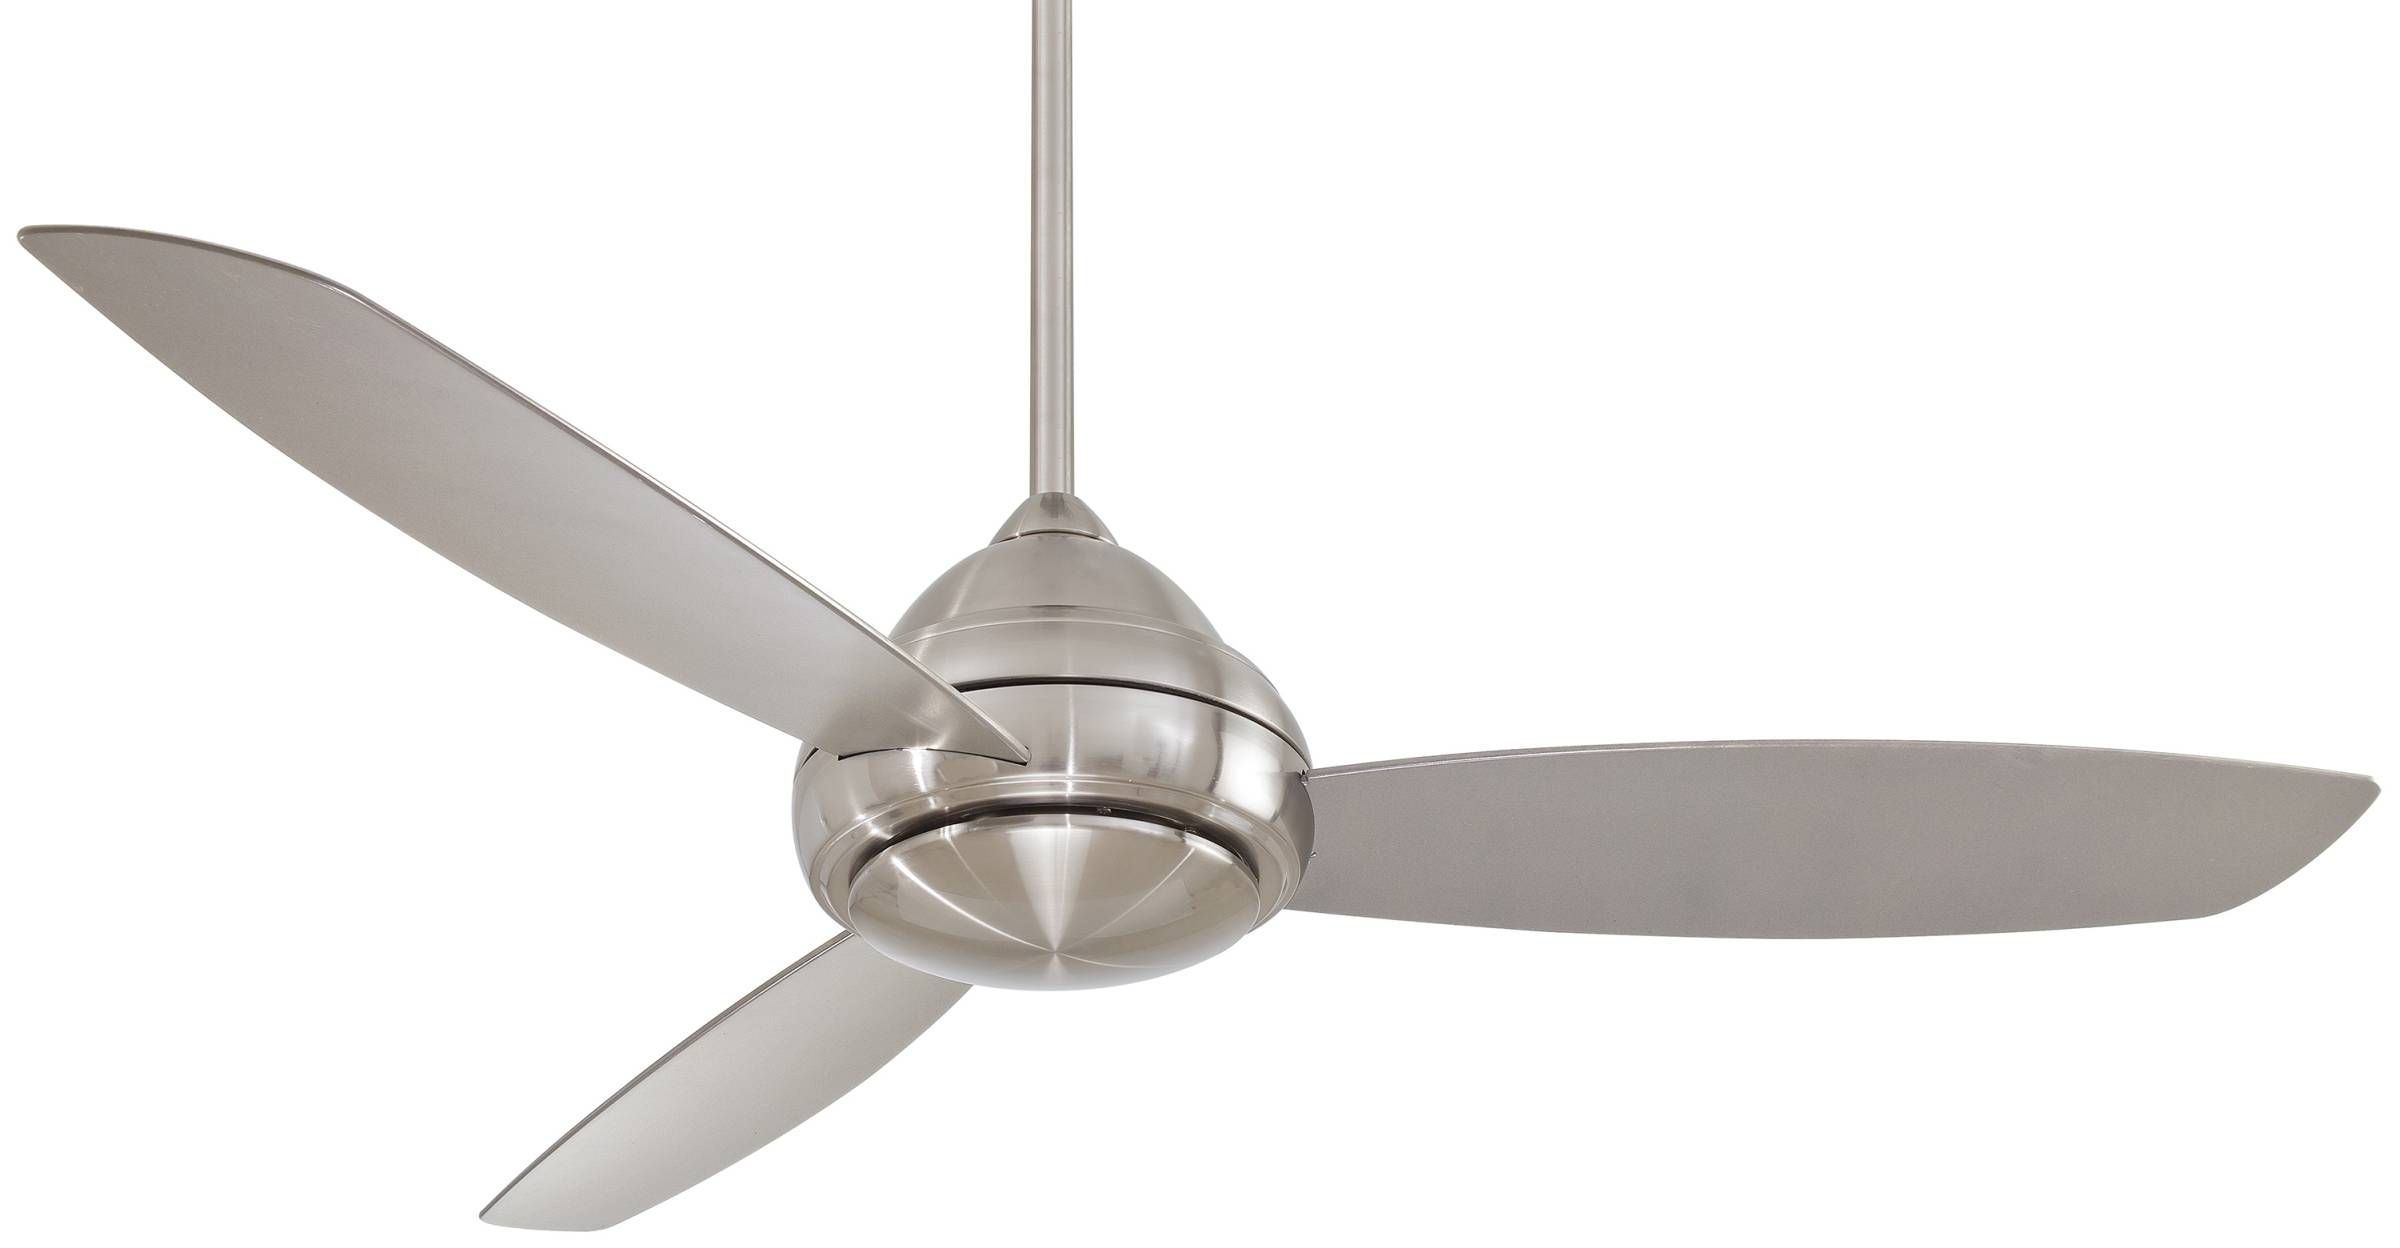 12 best images about folly beach on pinterest models ceiling fan 12 best images about folly beach on pinterest models ceiling fan lights and antique hardware aloadofball Image collections